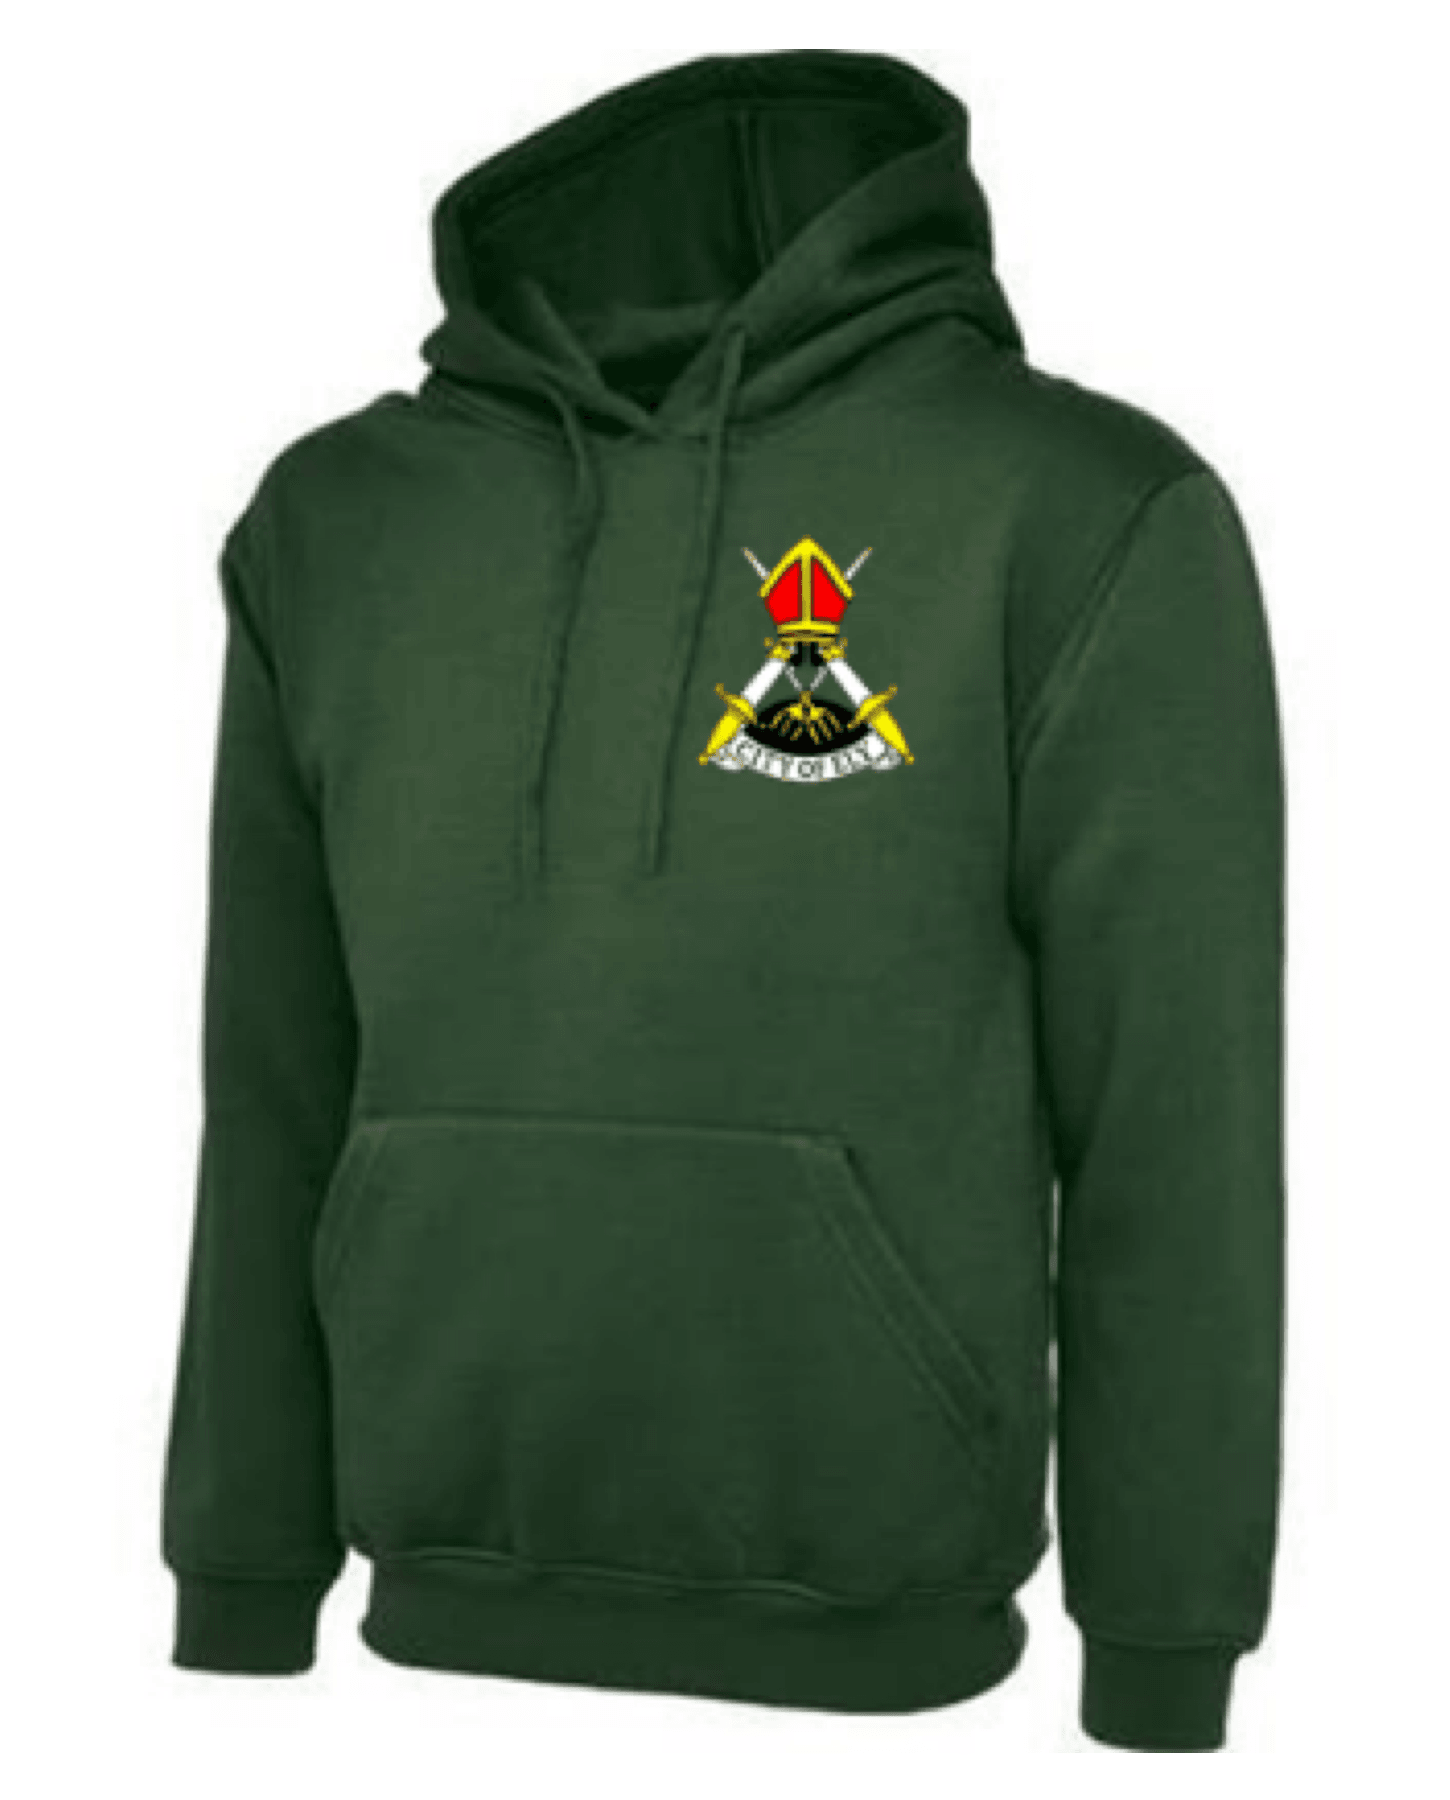 Ely City Hockey Club Hoodie – Kids